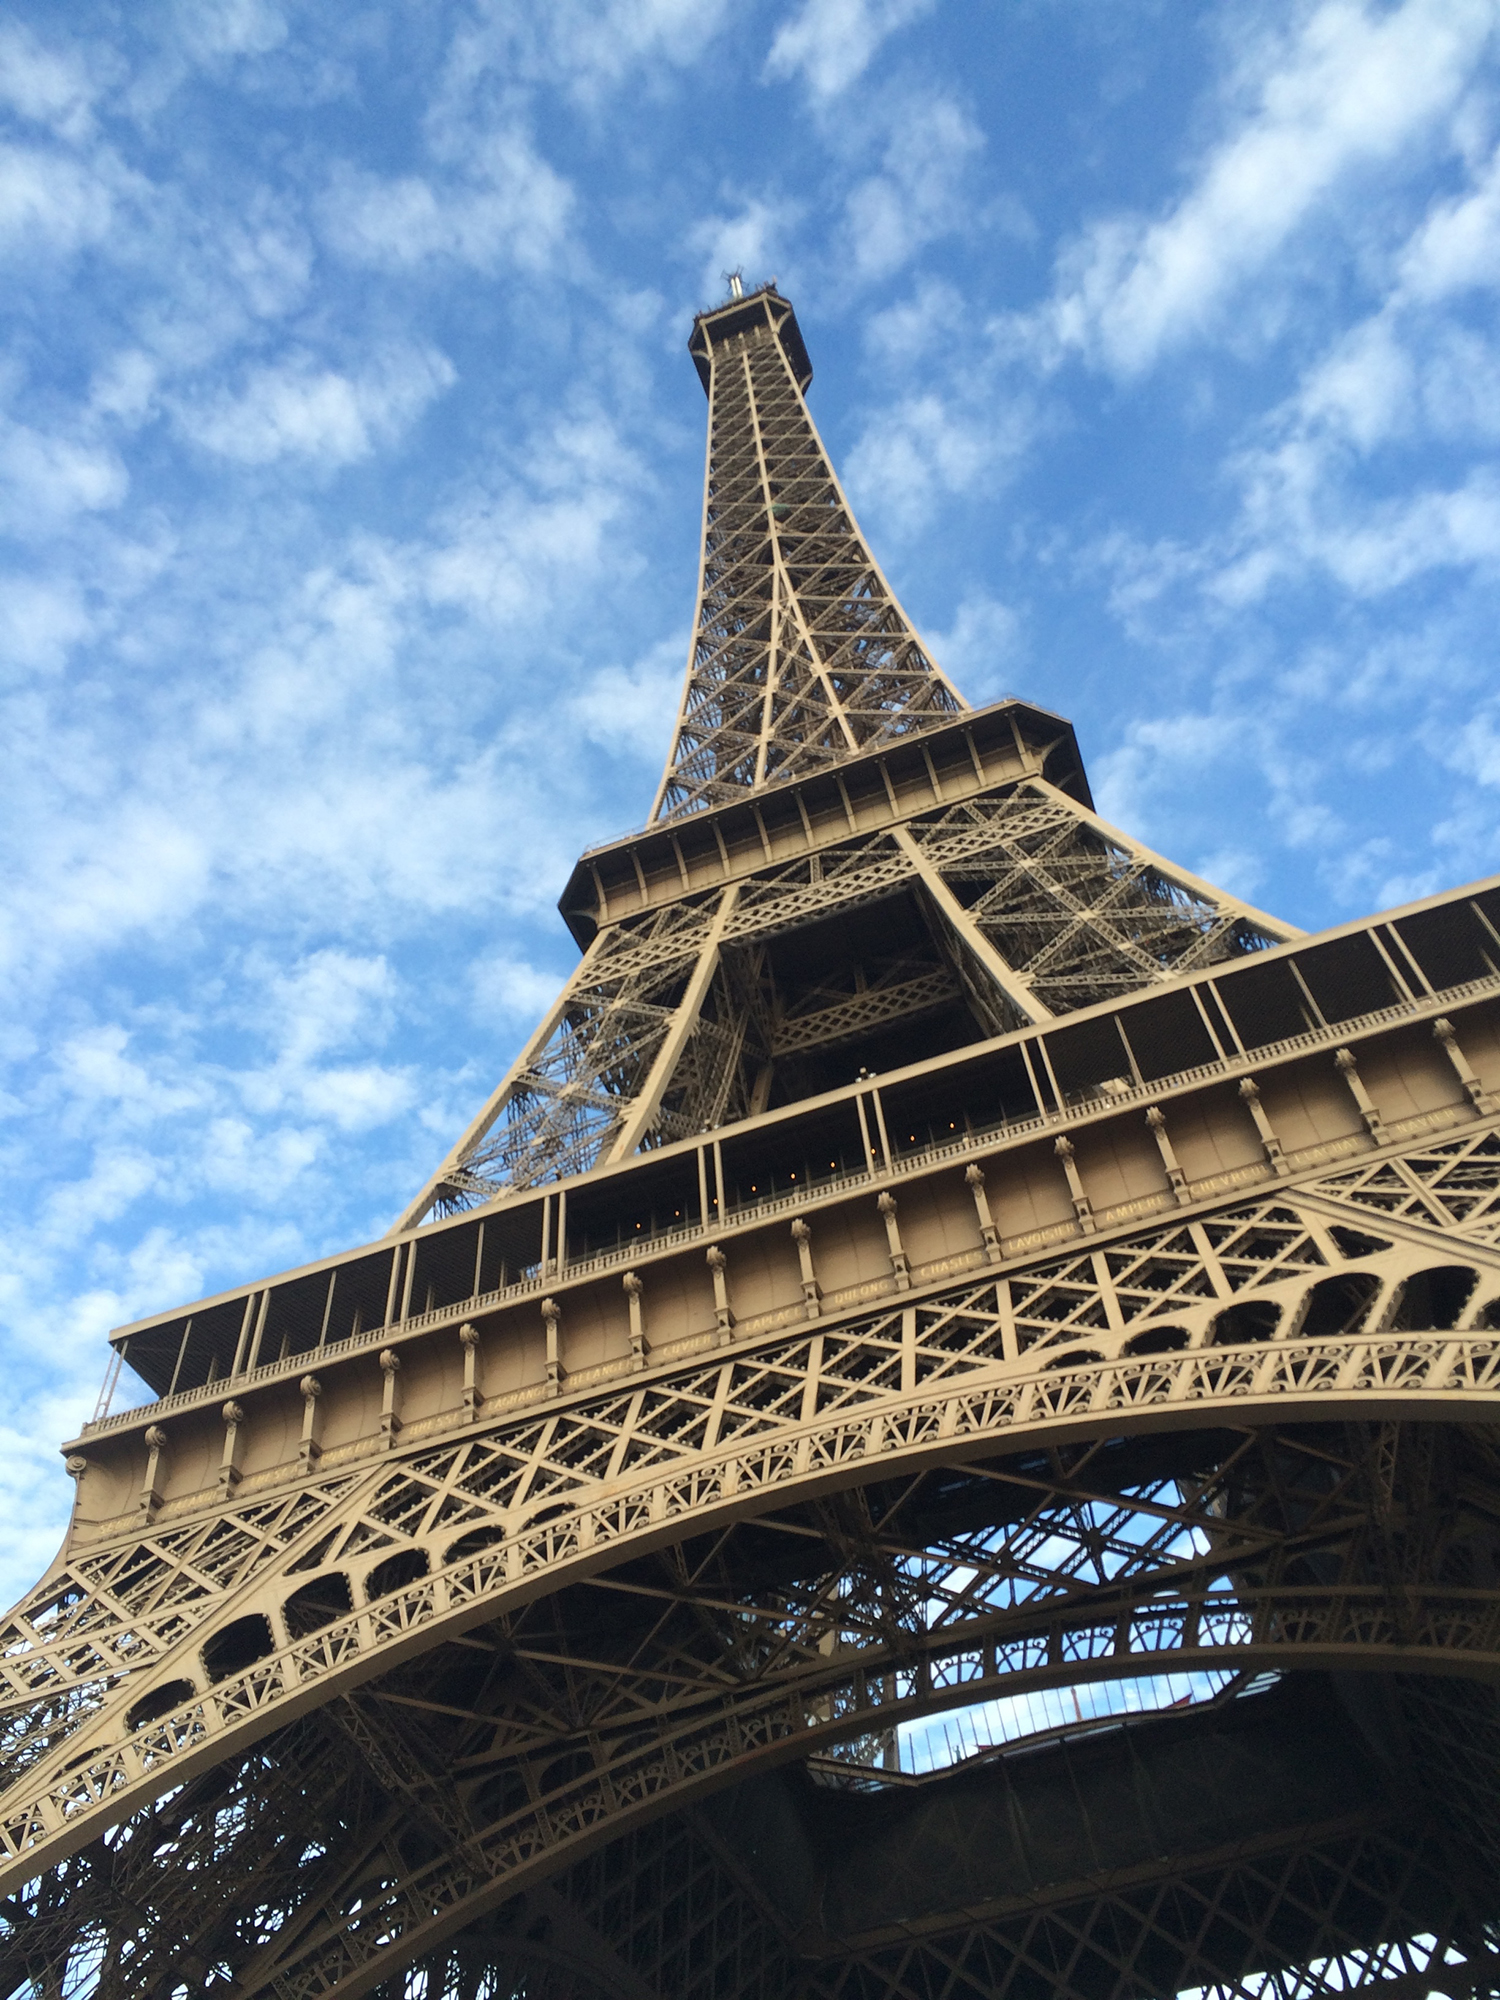 Paris announces €300 renovation of the Eiffel Tower